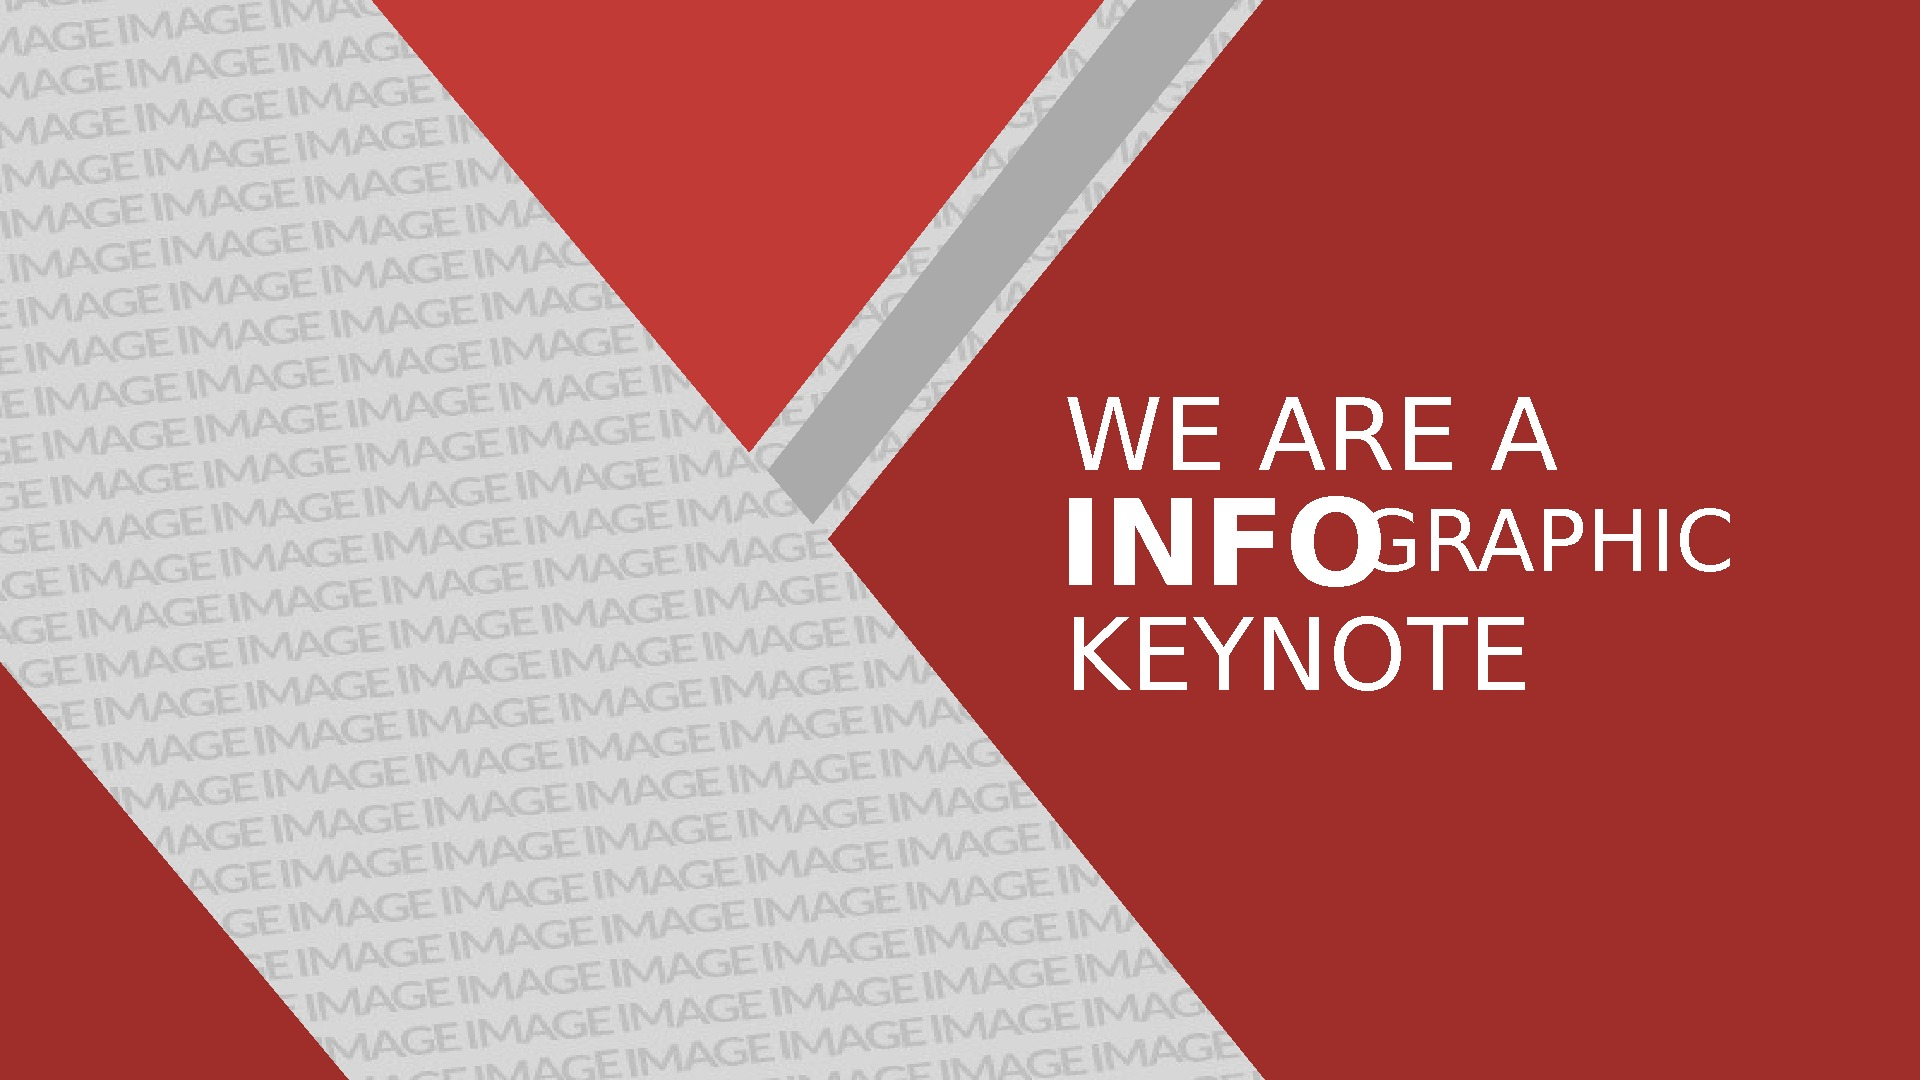 WE ARE A INFO GRAPHIC KEYNOTE